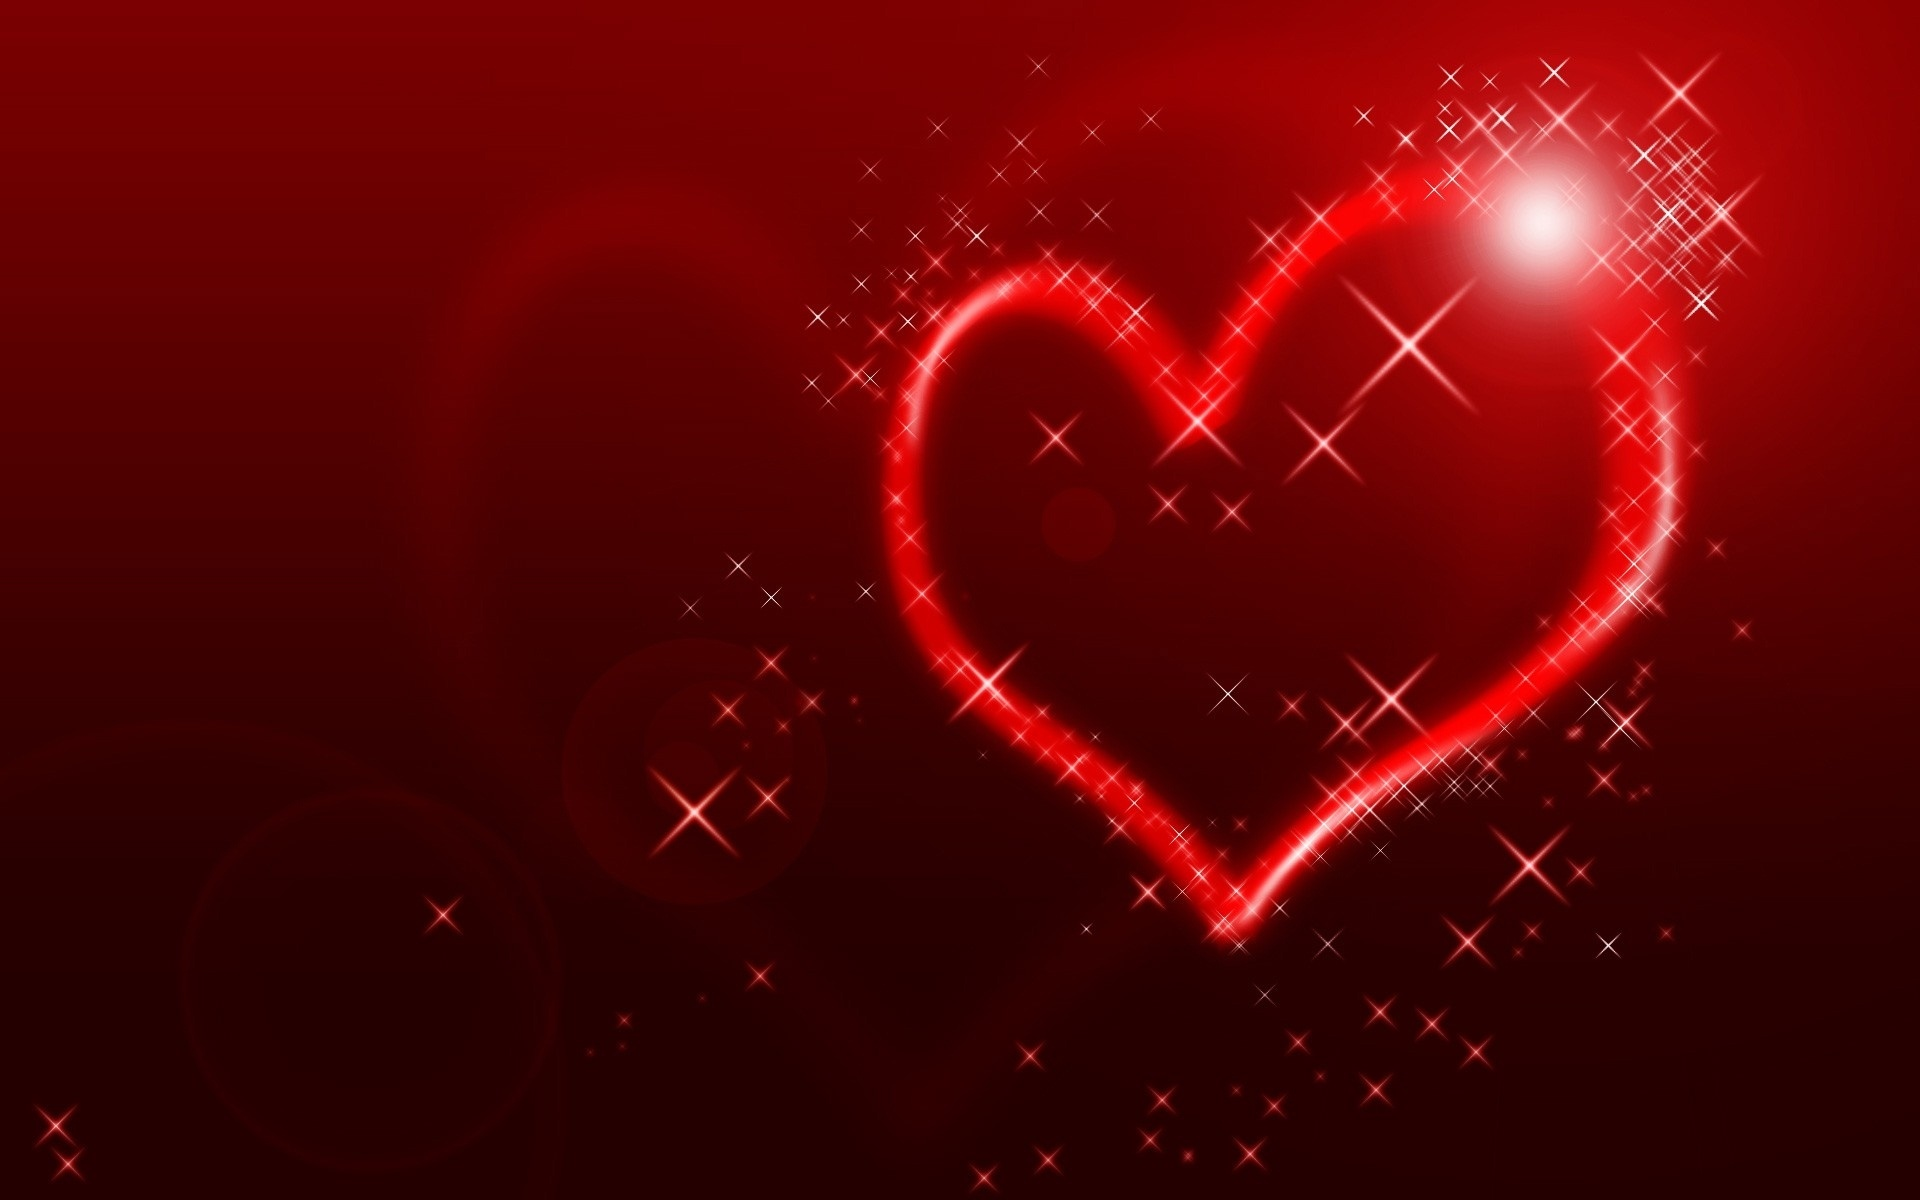 wallpaperscomwallpapersvalentines love sparkle windows 8 wallpaper 1920x1200